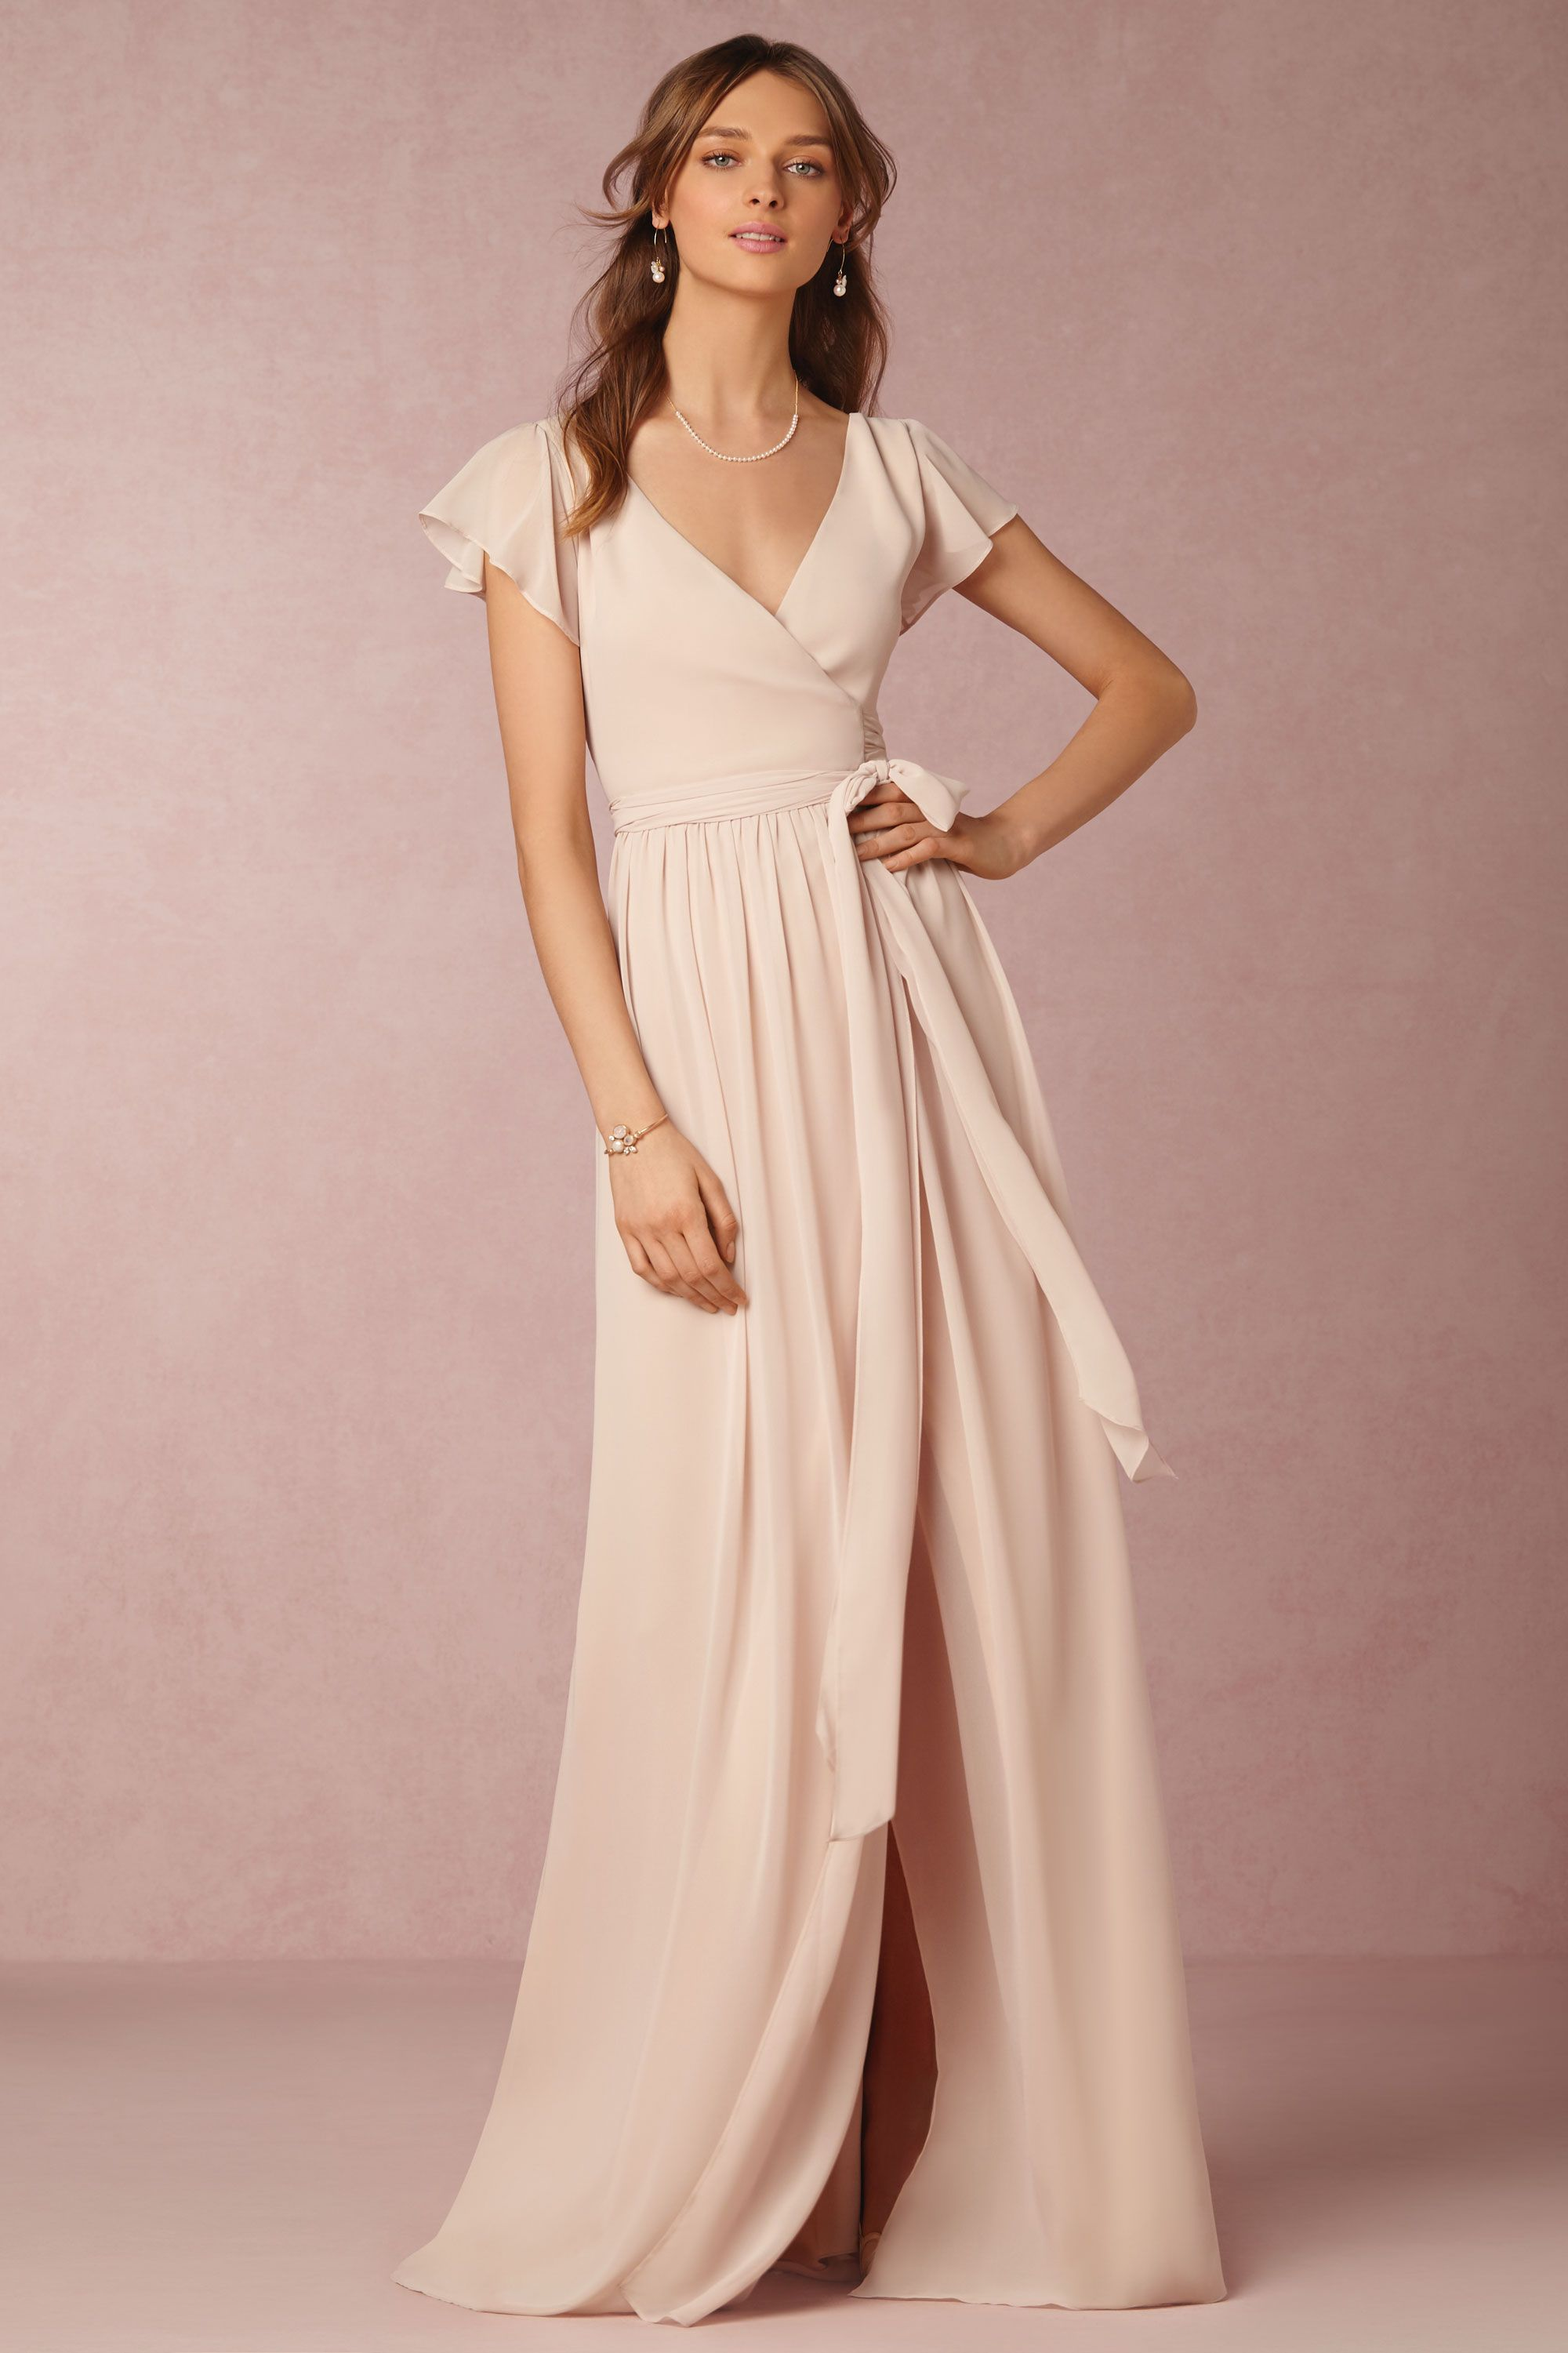 BHLDN\'s Joanna August Zola Dress in Sand | Pinterest | Damitas de ...